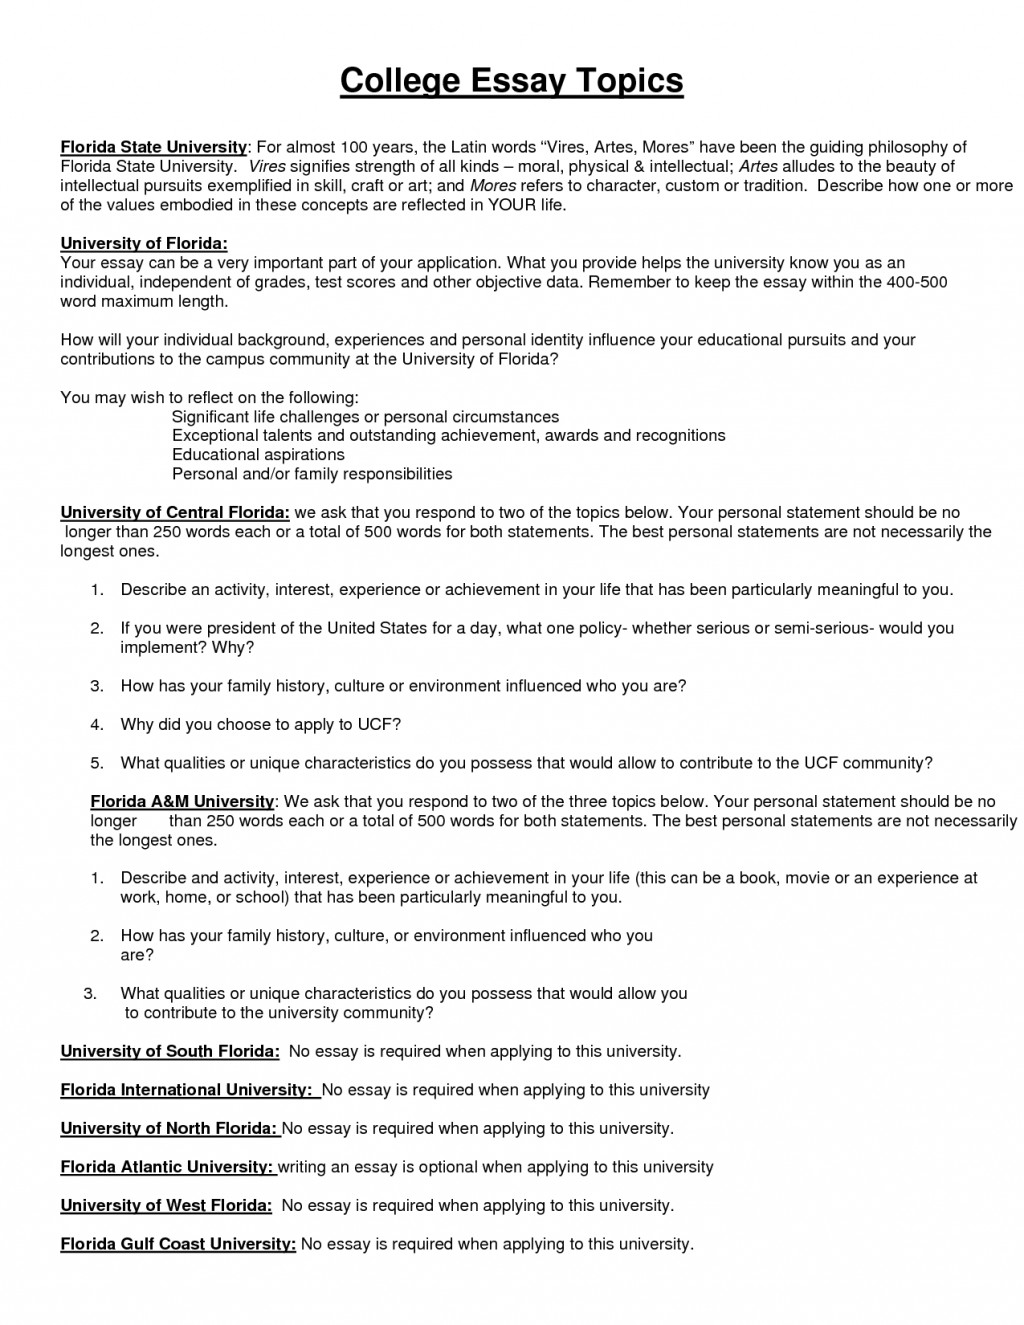 006 Free Topic Essay Resume Examples Templates How To Write Good For College Example Best Surprising Topics Composition High School Students Job Interview Large